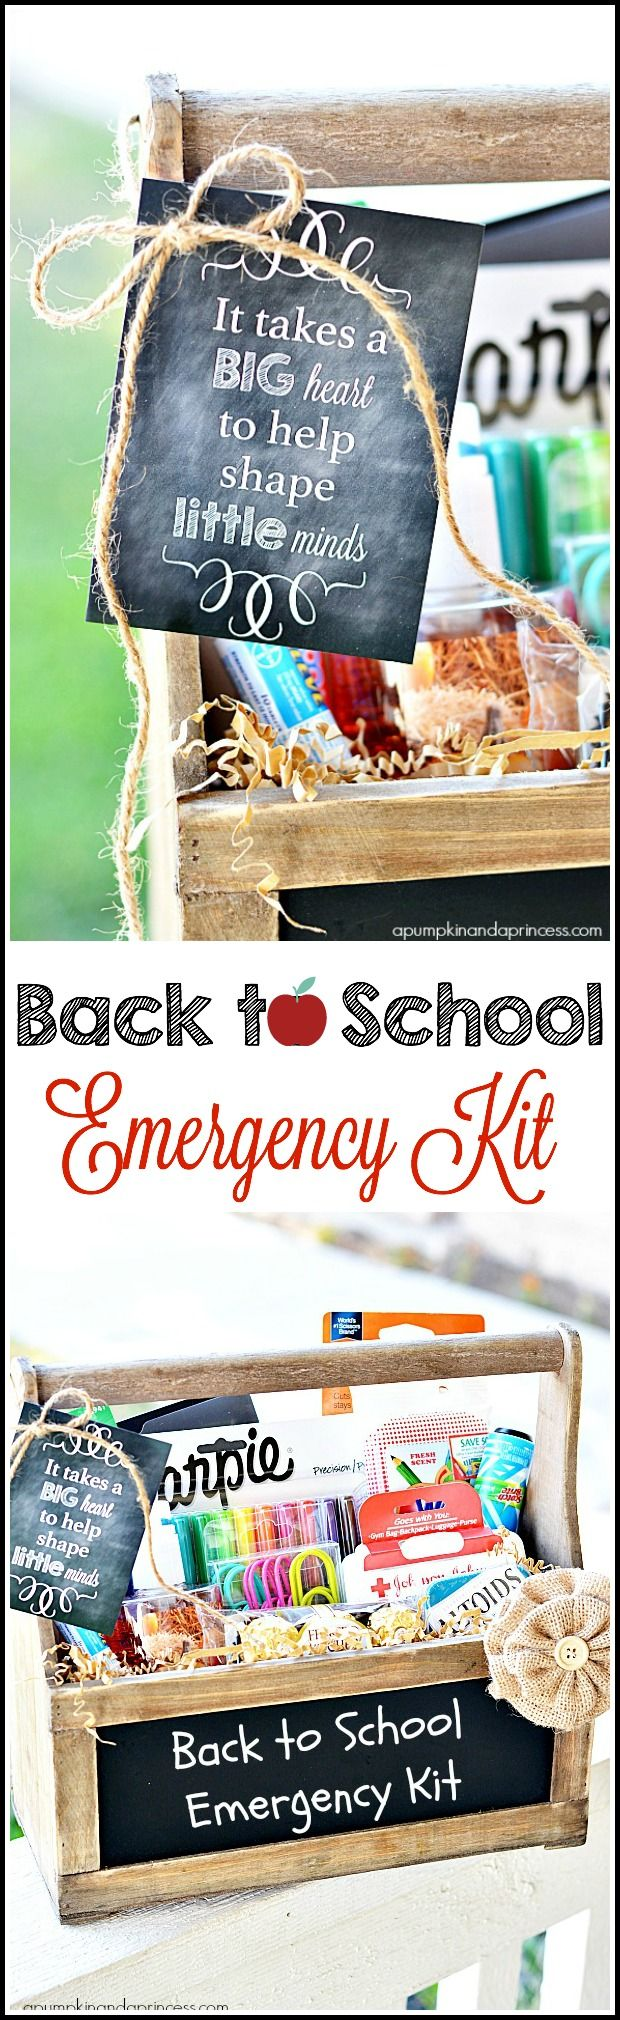 Send your kids back to the classroom this year with an extra something special for their teachers. This back-to-school emergency kit idea from A Pumpkin and a Princess is a great way to help teachers prepare for the upcoming school year.